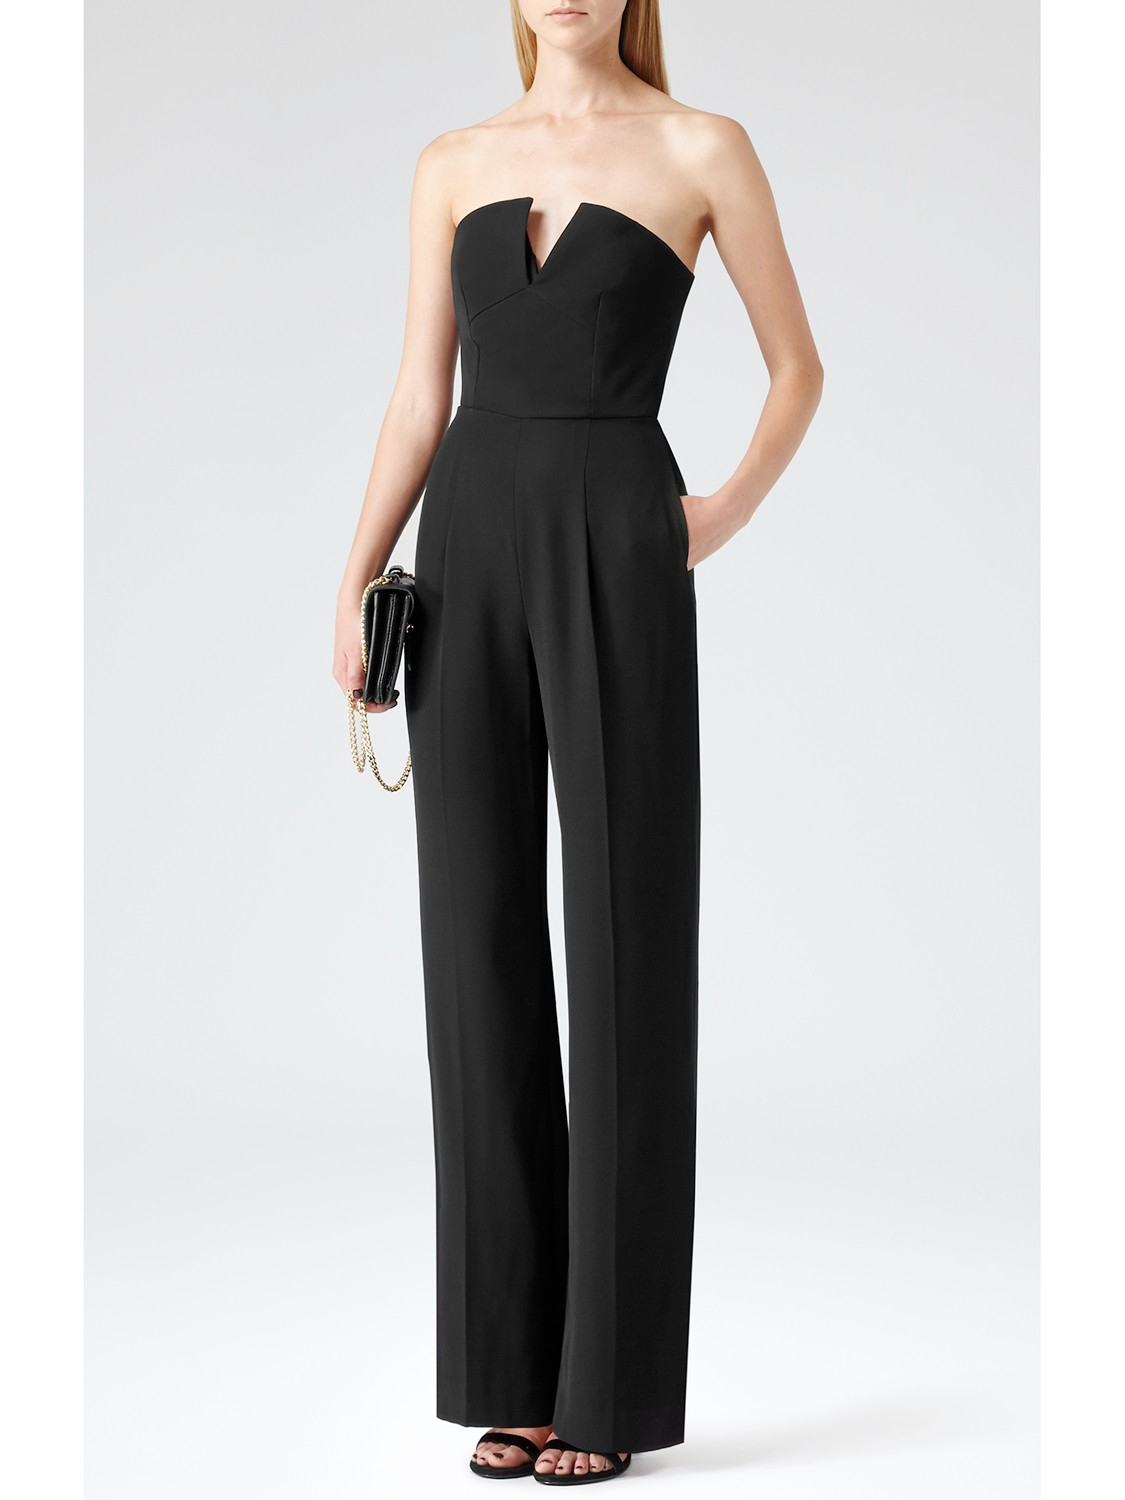 9 Best Womens Formal Jumpsuits In Different Types Amp Colors